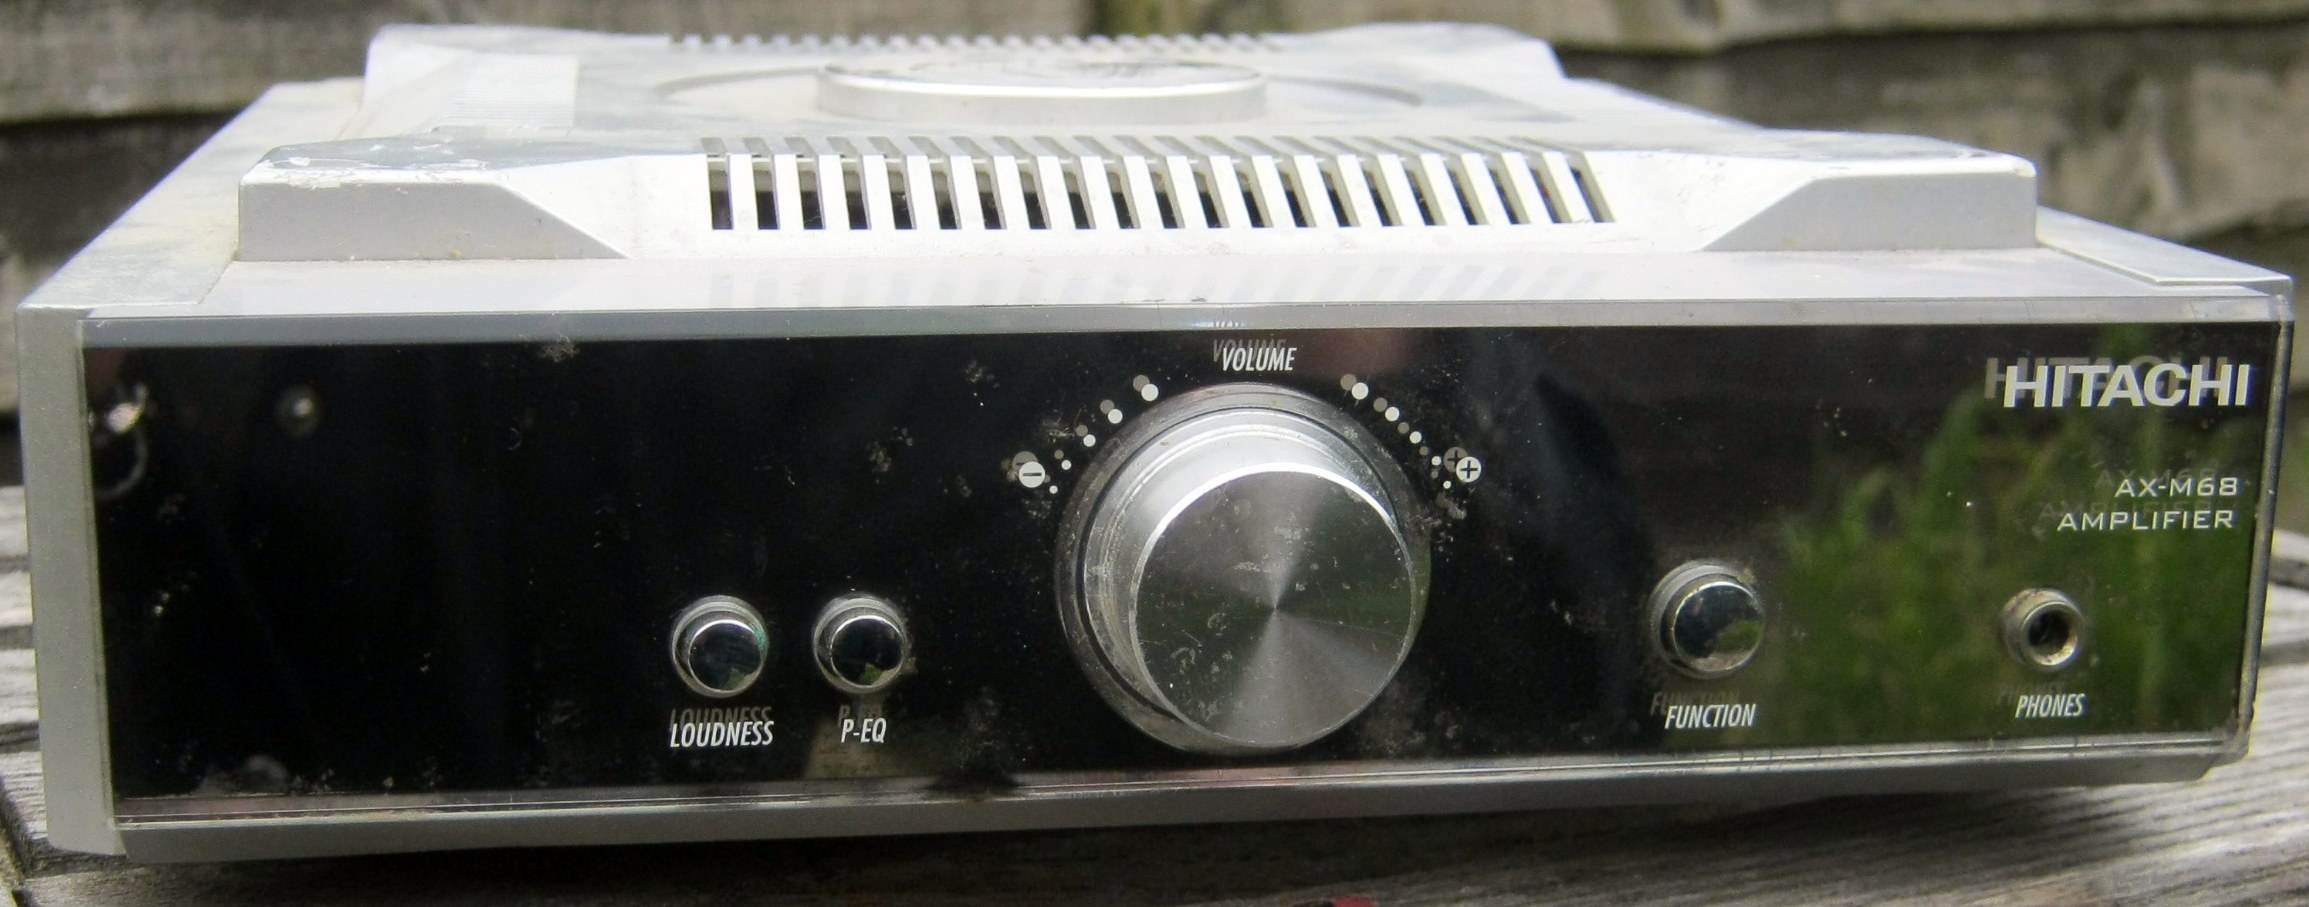 Hitachi AX-M68 amplifier front